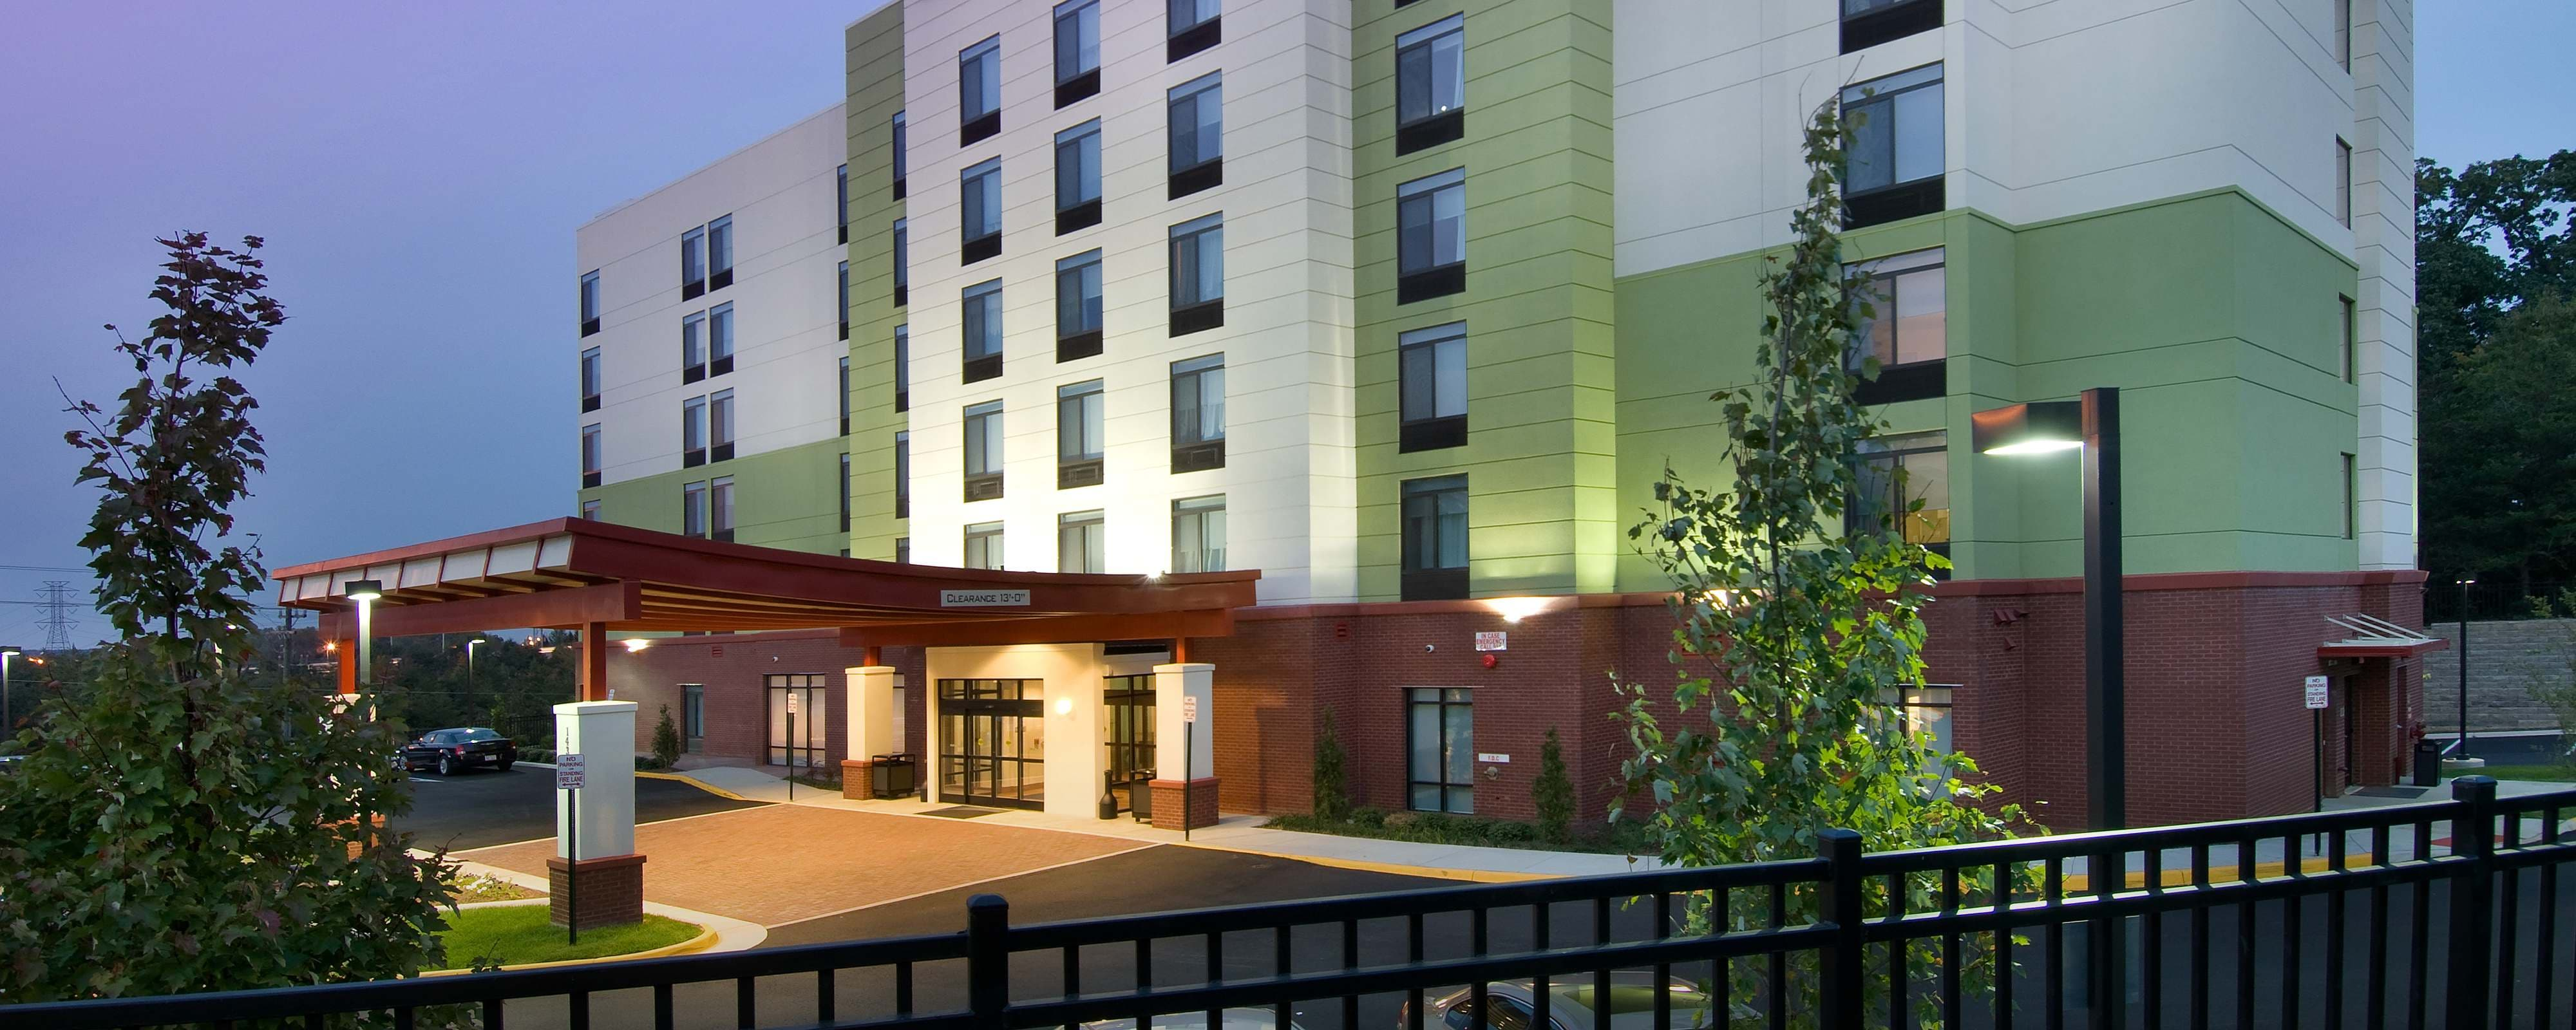 hotels in woodbridge virginia